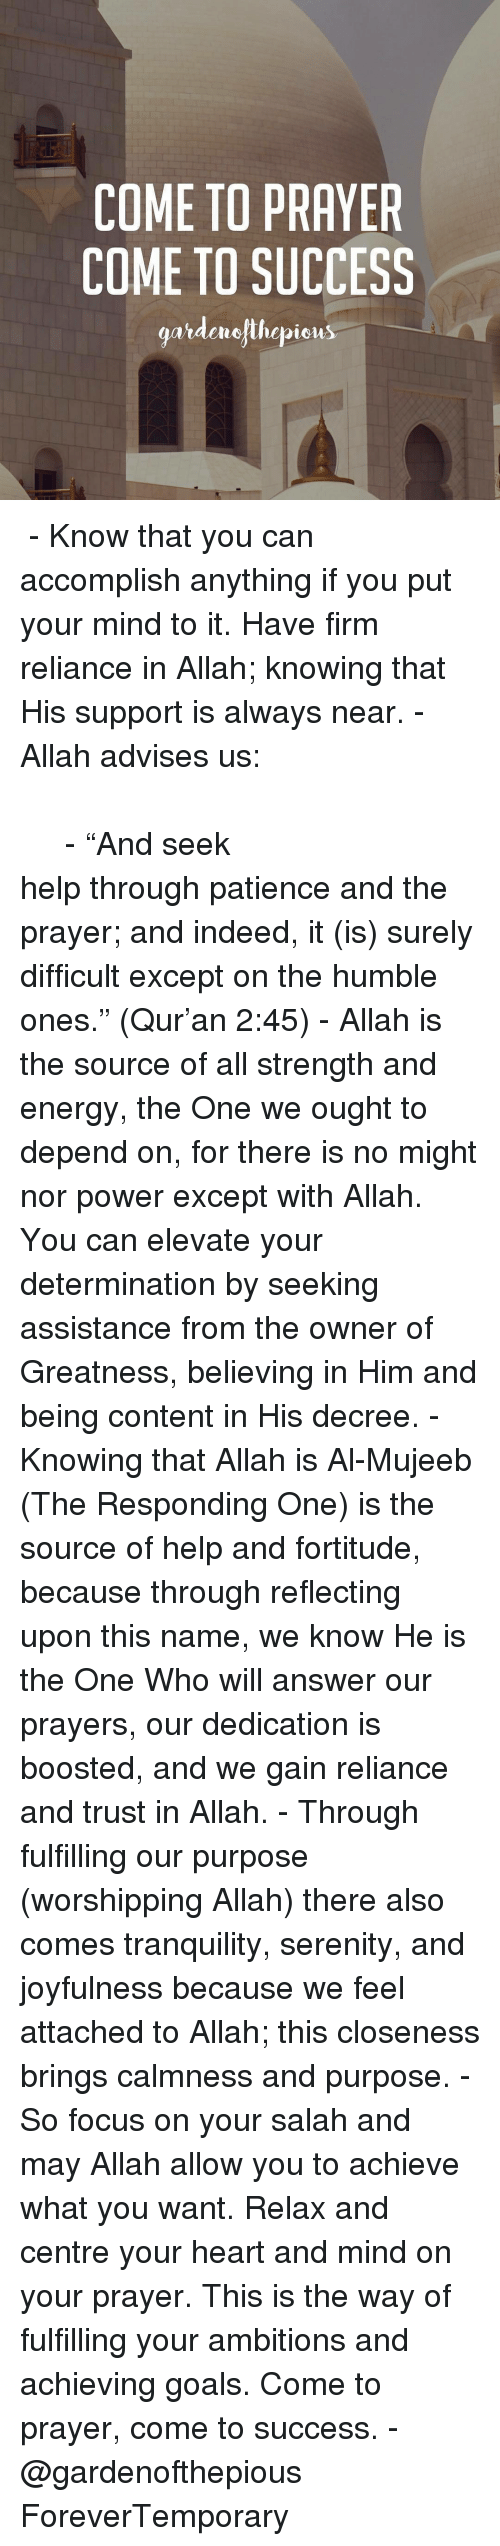 """Memes, Boost, and Humble: COME TO PRAYER  COME TO SUCCESS  gardenelihepieus ﷽ - Know that you can accomplish anything if you put your mind to it. Have firm reliance in Allah; knowing that His support is always near. - Allah advises us: وَاسْتَعِينُوا بِالصَّبْرِ وَالصَّلَاةِ وَإِنَّهَا لَكَبِيرَةٌ إِلَّا عَلَى الْخَاشِعِينَ - """"And seek help through patience and the prayer; and indeed, it (is) surely difficult except on the humble ones."""" (Qur'an 2:45) - Allah is the source of all strength and energy, the One we ought to depend on, for there is no might nor power except with Allah. You can elevate your determination by seeking assistance from the owner of Greatness, believing in Him and being content in His decree. - Knowing that Allah is Al-Mujeeb (The Responding One) is the source of help and fortitude, because through reflecting upon this name, we know He is the One Who will answer our prayers, our dedication is boosted, and we gain reliance and trust in Allah. - Through fulfilling our purpose (worshipping Allah) there also comes tranquility, serenity, and joyfulness because we feel attached to Allah; this closeness brings calmness and purpose. - So focus on your salah and may Allah allow you to achieve what you want. Relax and centre your heart and mind on your prayer. This is the way of fulfilling your ambitions and achieving goals. Come to prayer, come to success. - @gardenofthepious ForeverTemporary"""